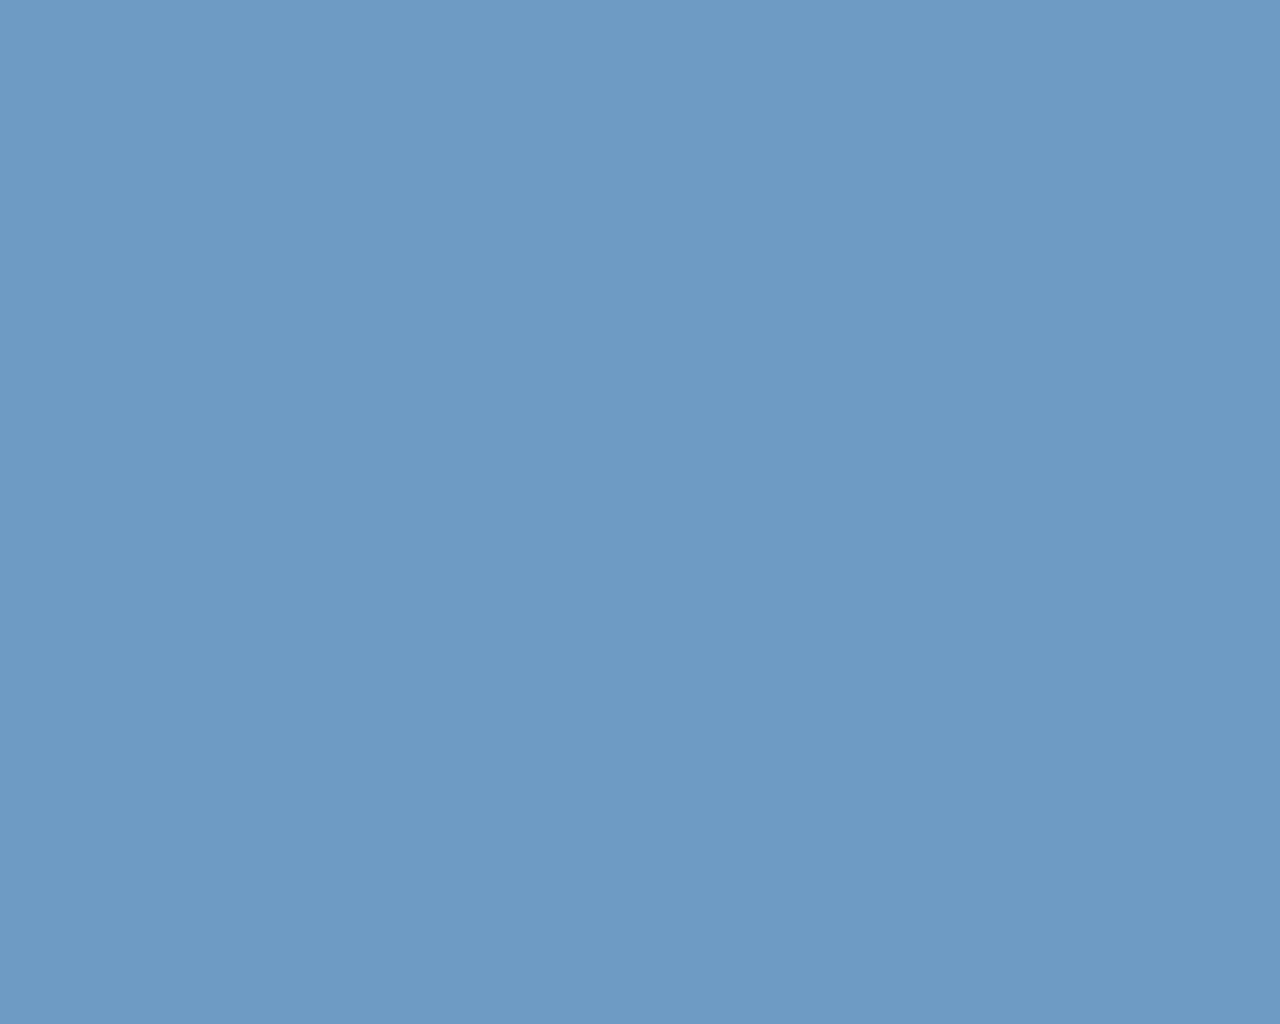 1280x1024 Cerulean Frost Solid Color Background